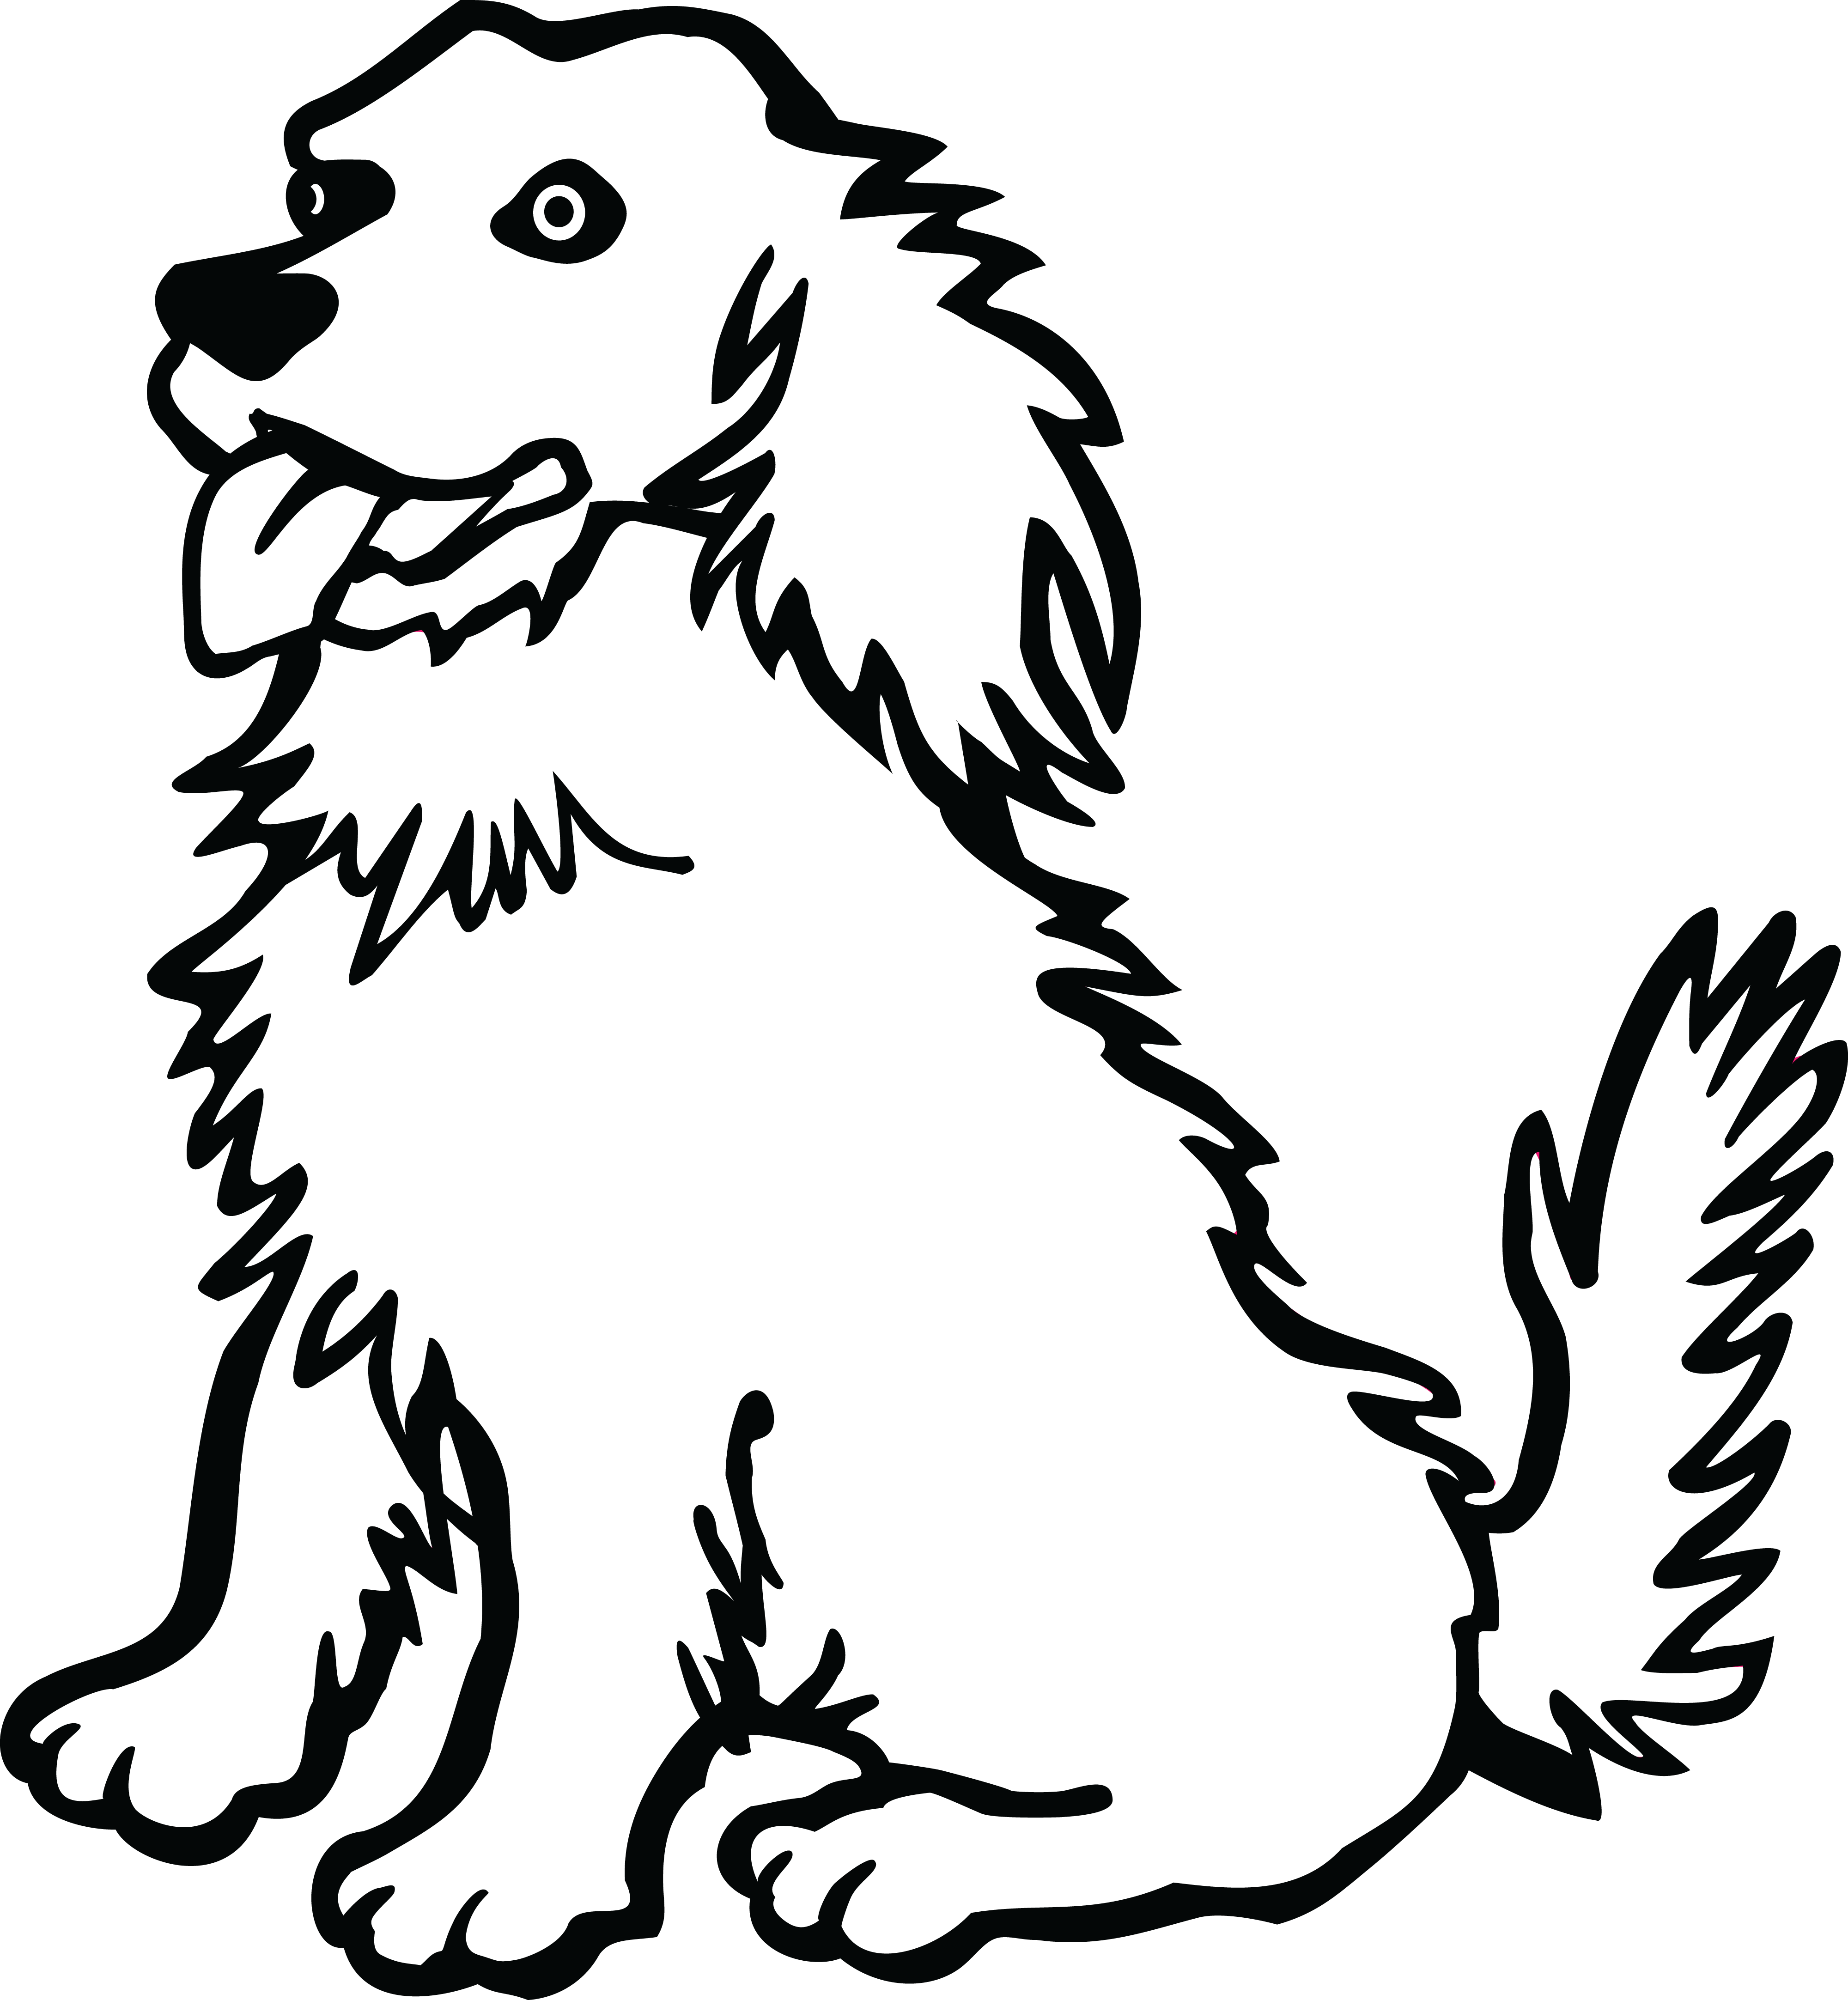 free clipart of a dog rh free clipartof com dog clipart free black and white dog images free clipart